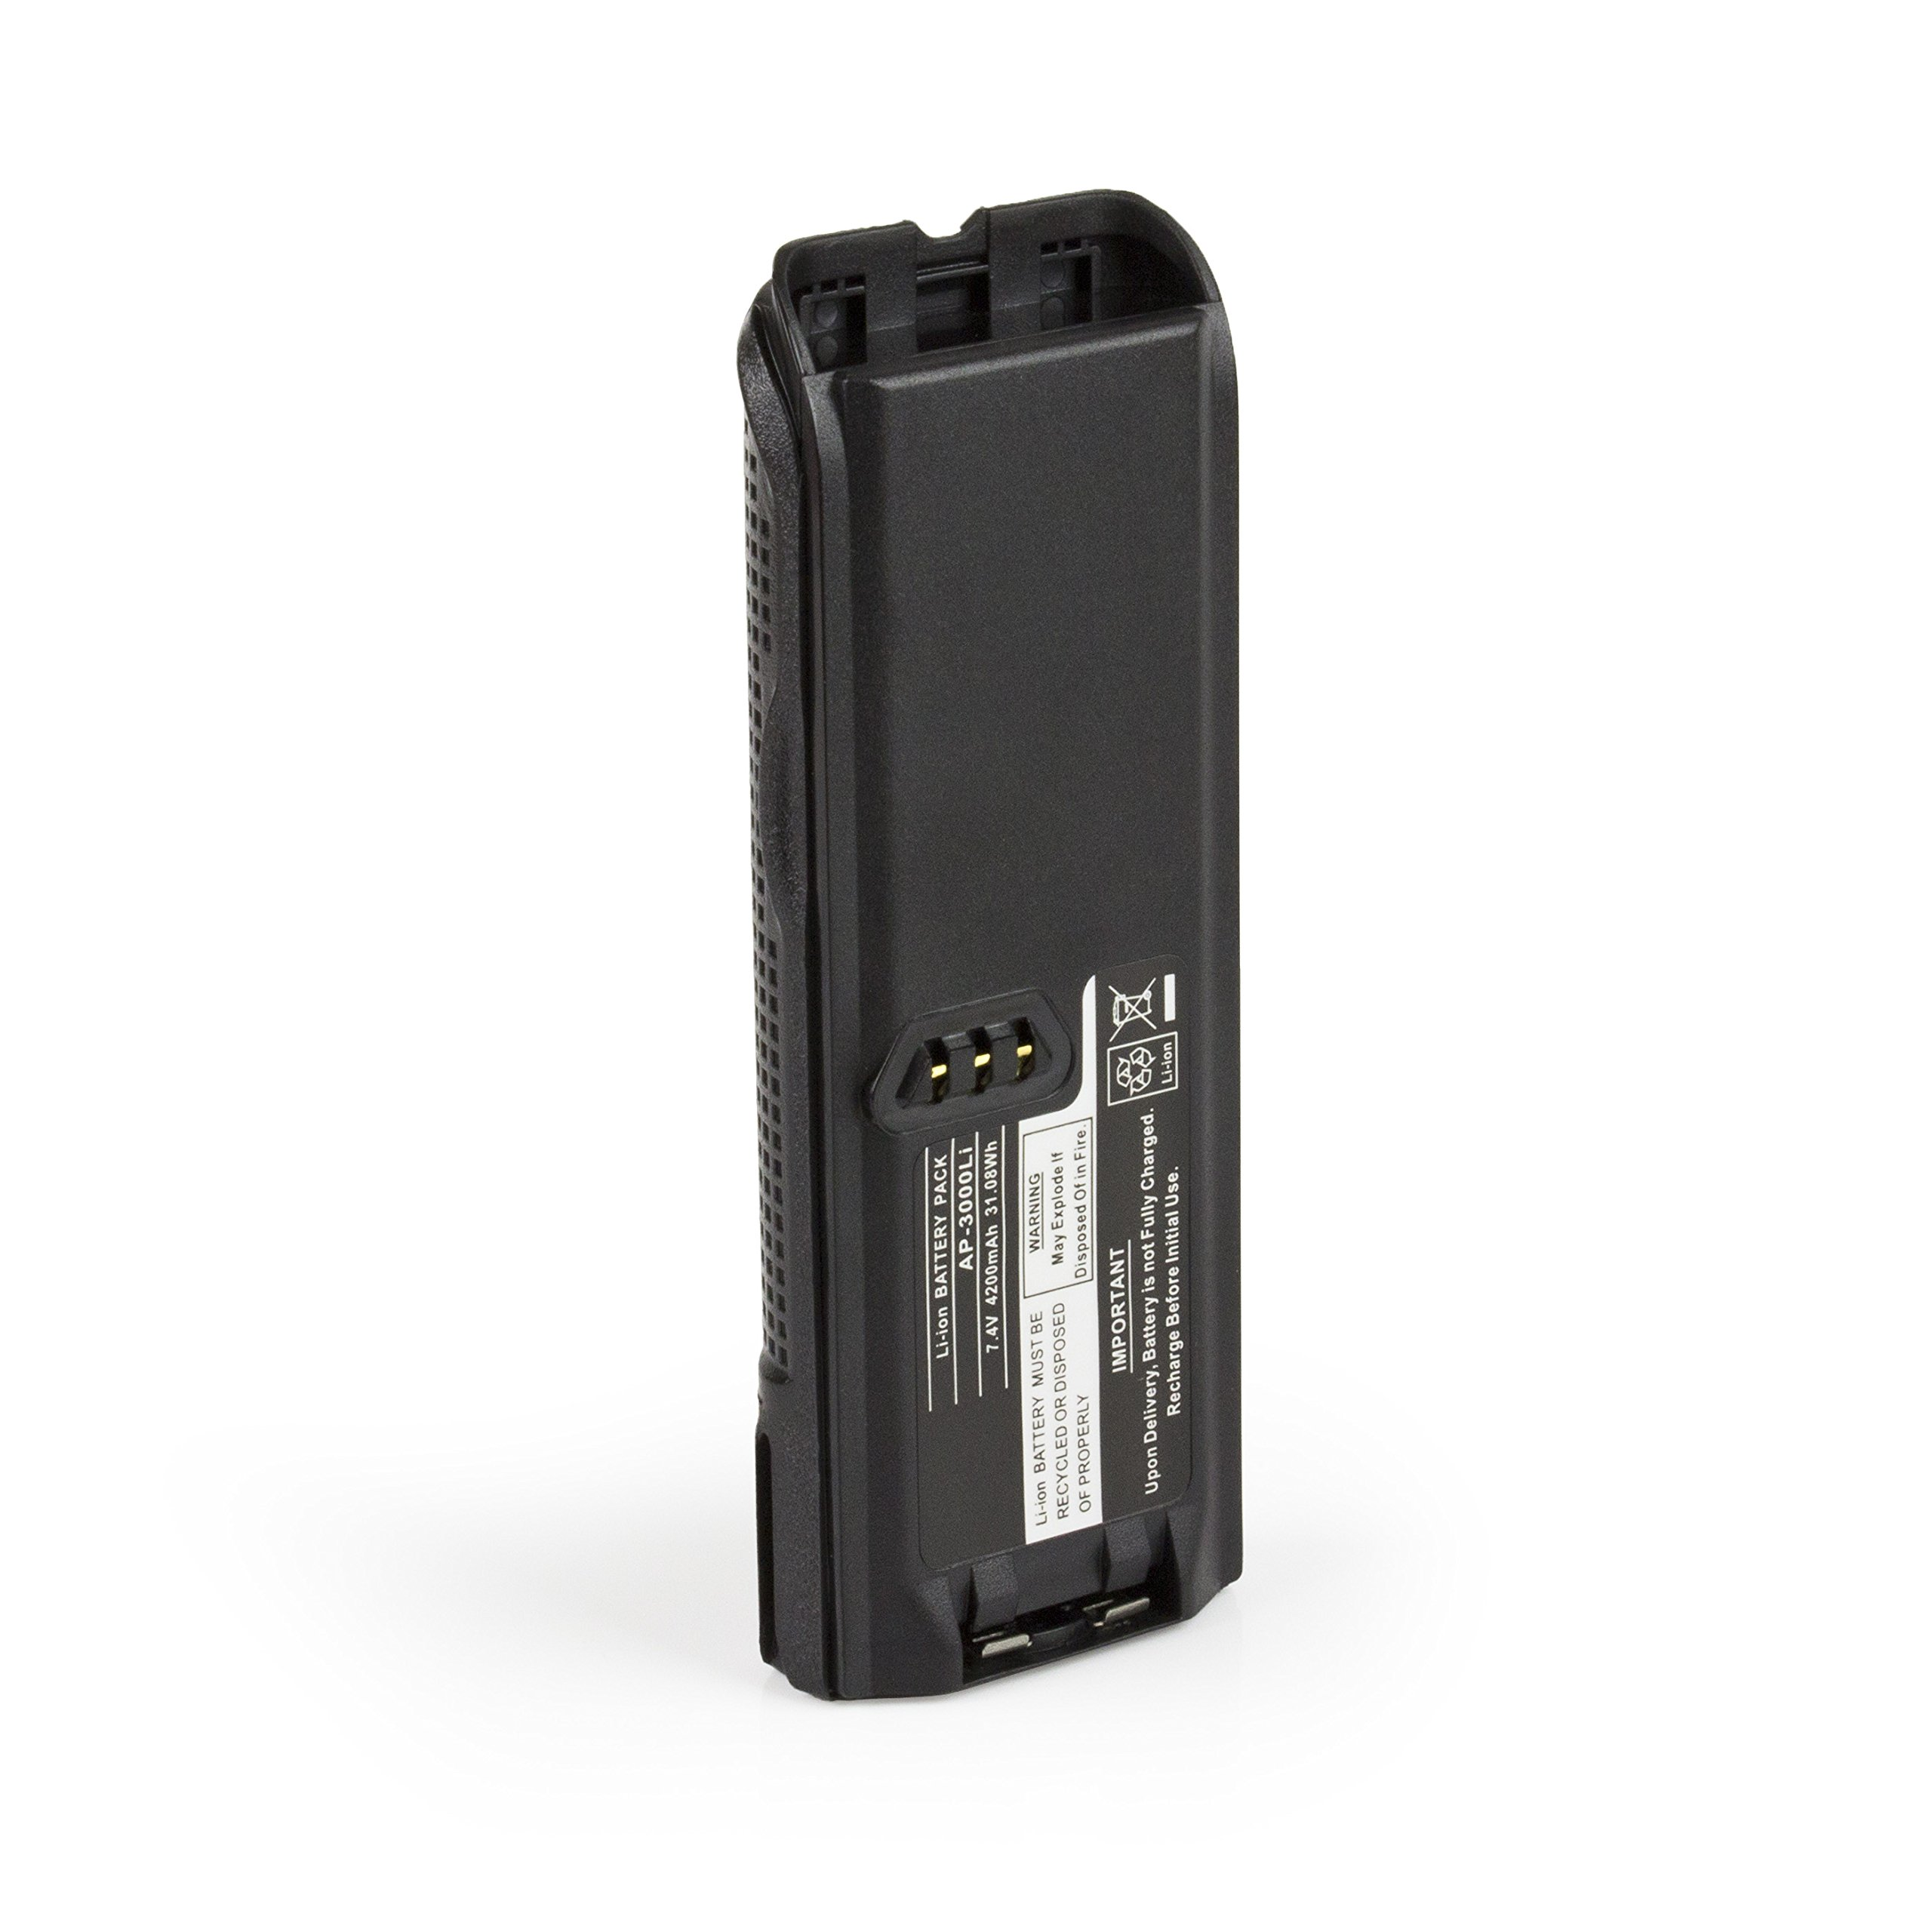 ExpertPower 4200mAh LI-ON NTN8293 NTN8294 NNTN9862 Slim Battery MOTOROLA XTS3000 3500 4250 XTS5000